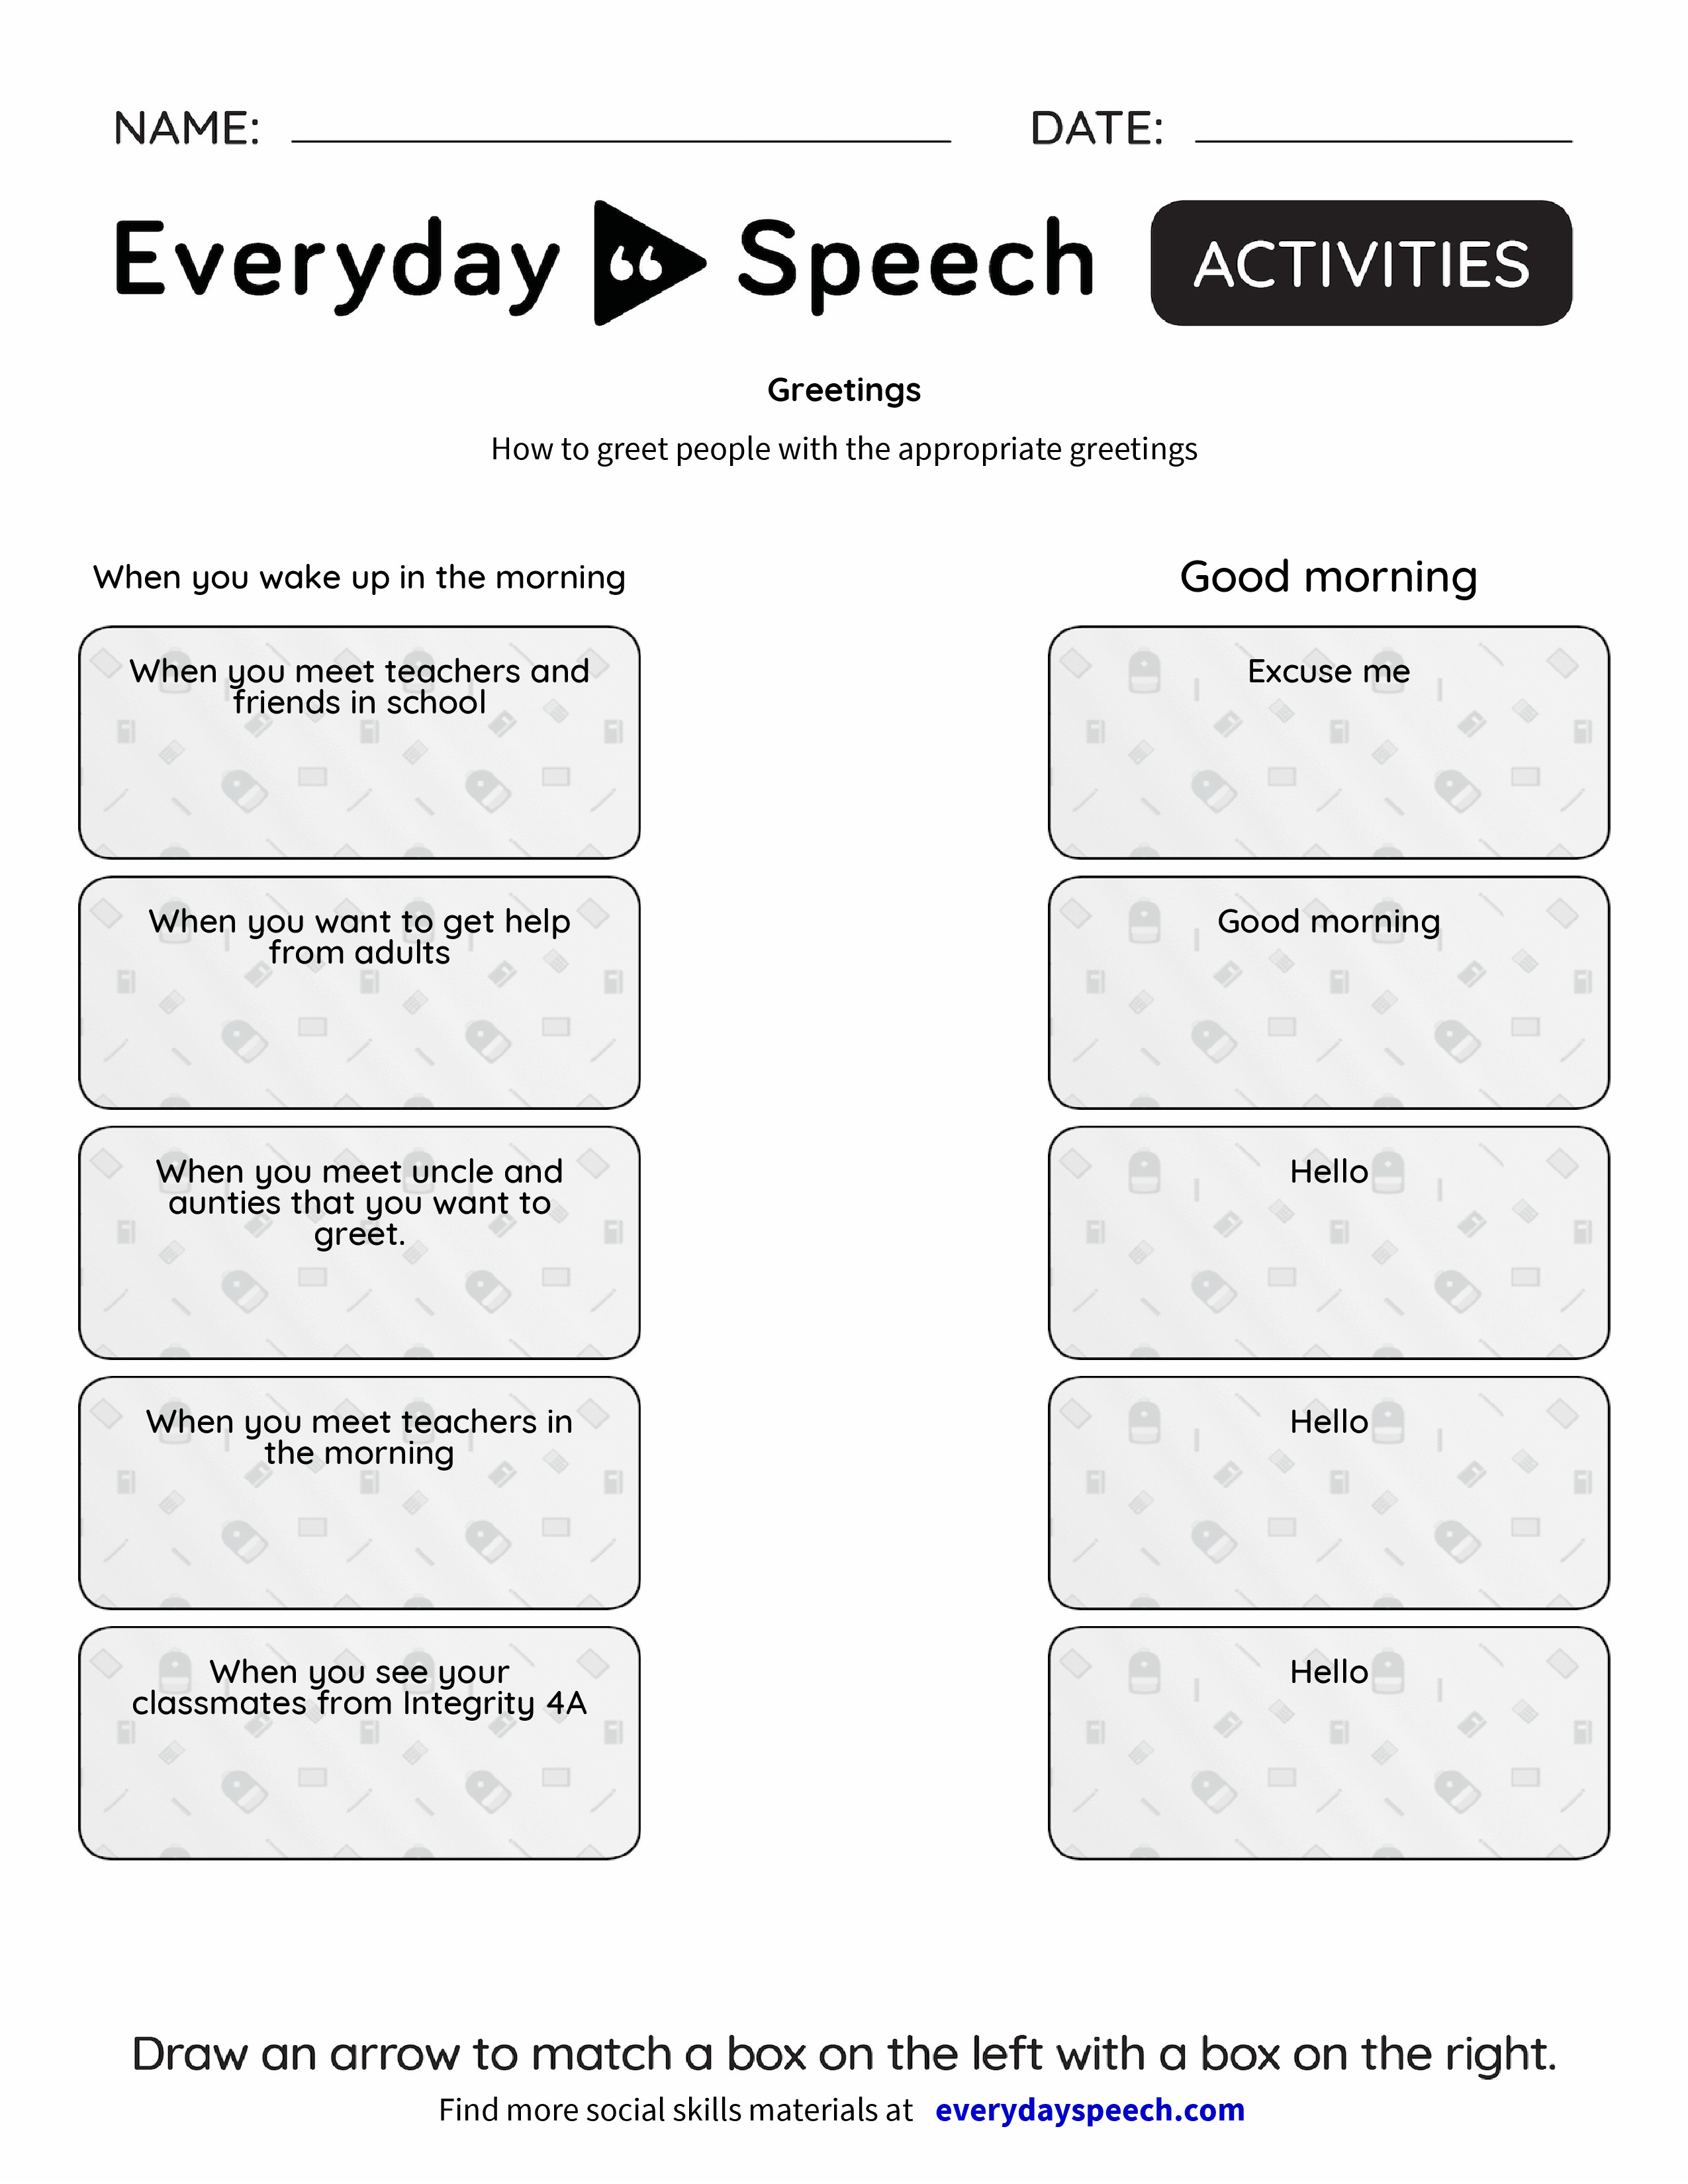 Greetings everyday speech everyday speech preview m4hsunfo